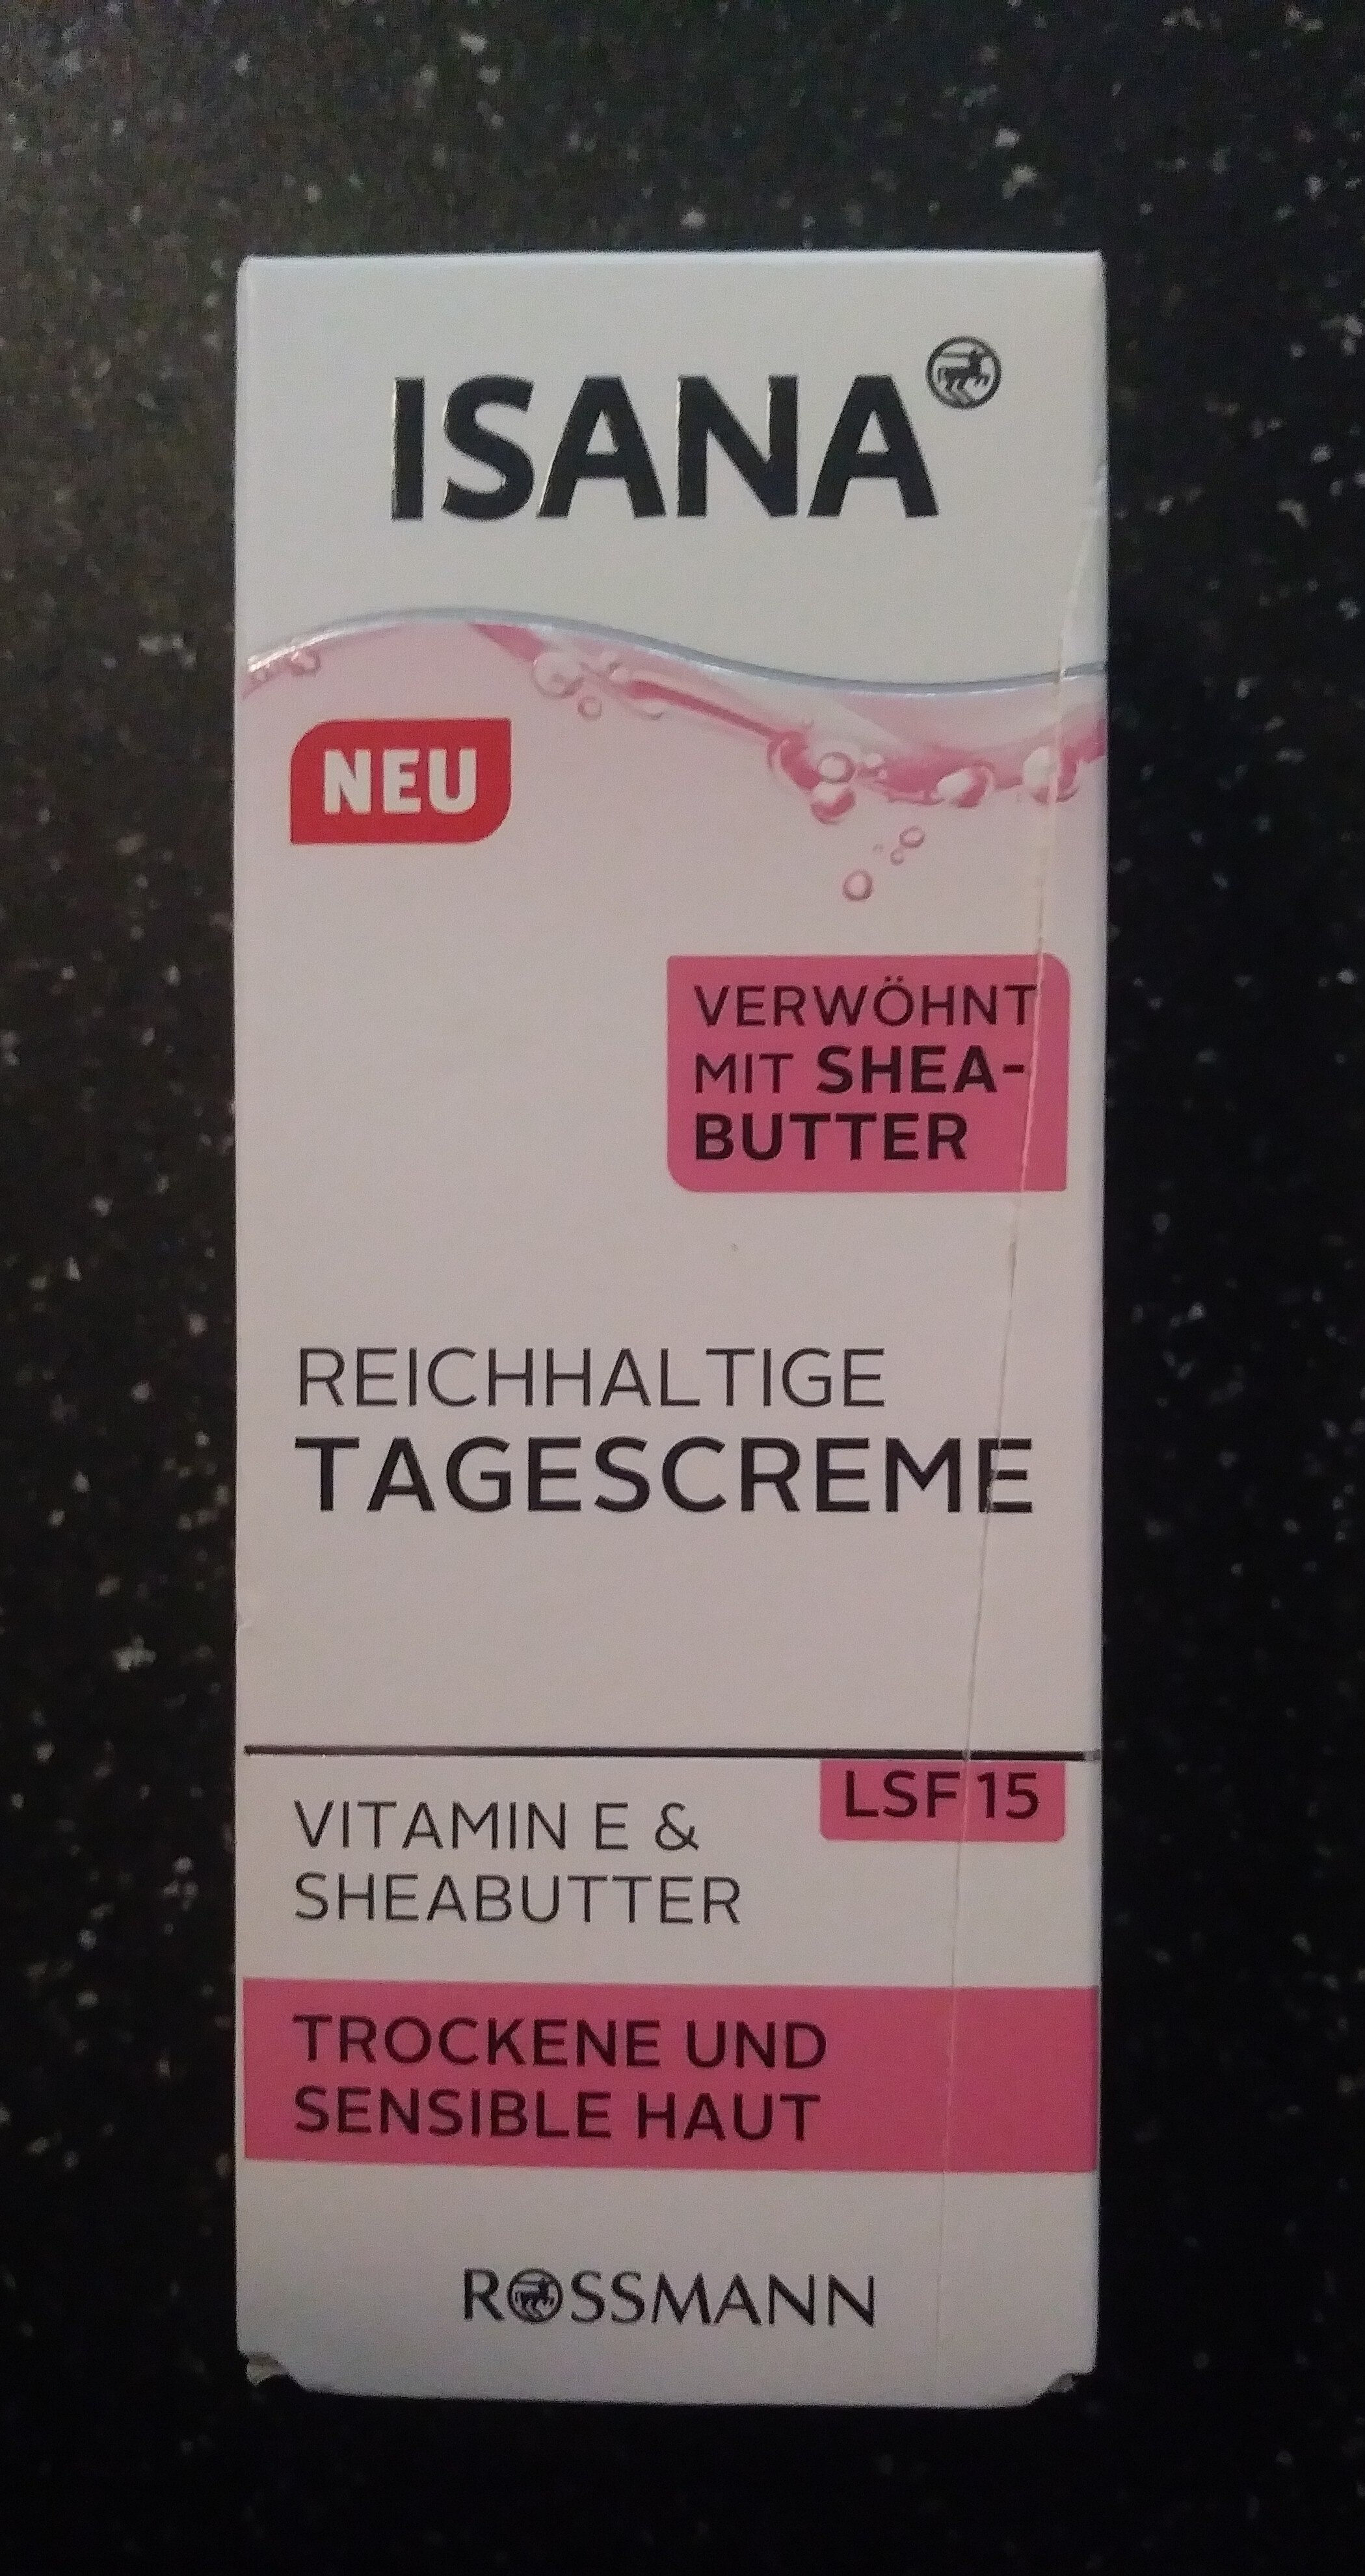 Reichhaltige Tagescreme - Product